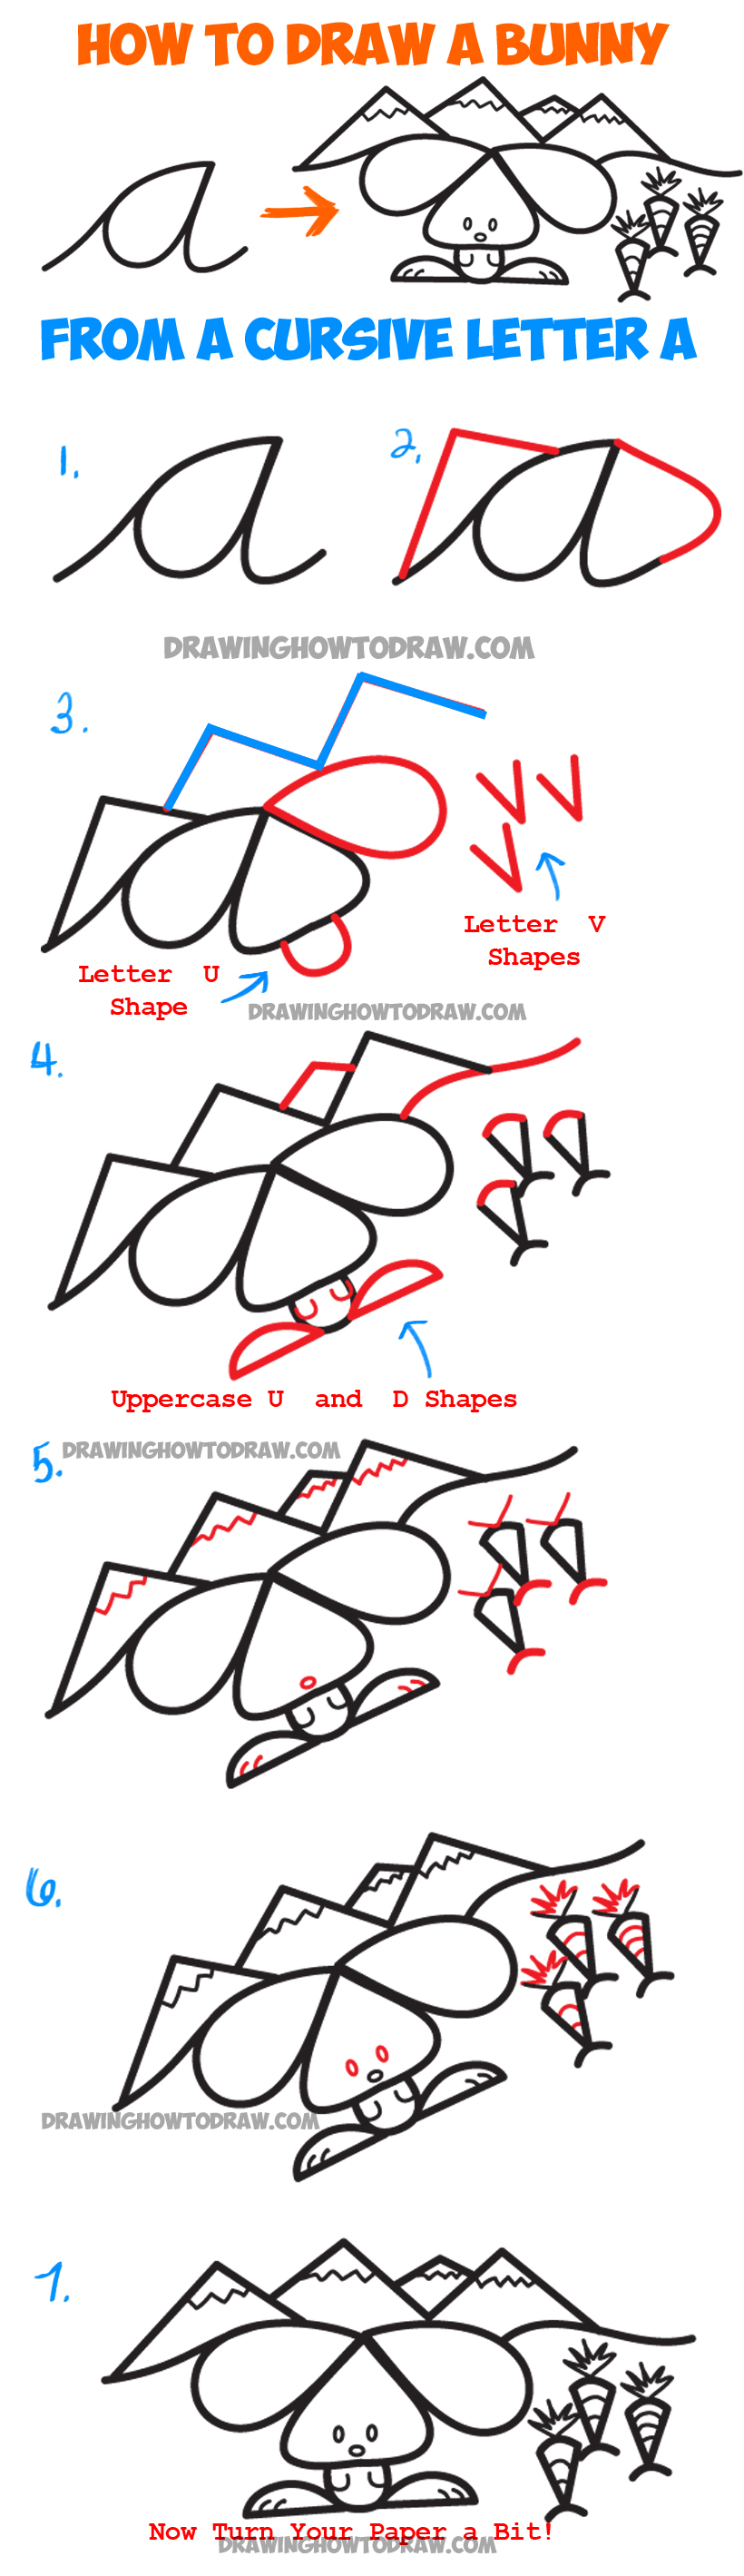 Learn How To Draw A Cartoon Bunny Rabbit Scene From Lowercase Cursive  Letter A Shape : · Basic Drawingstep